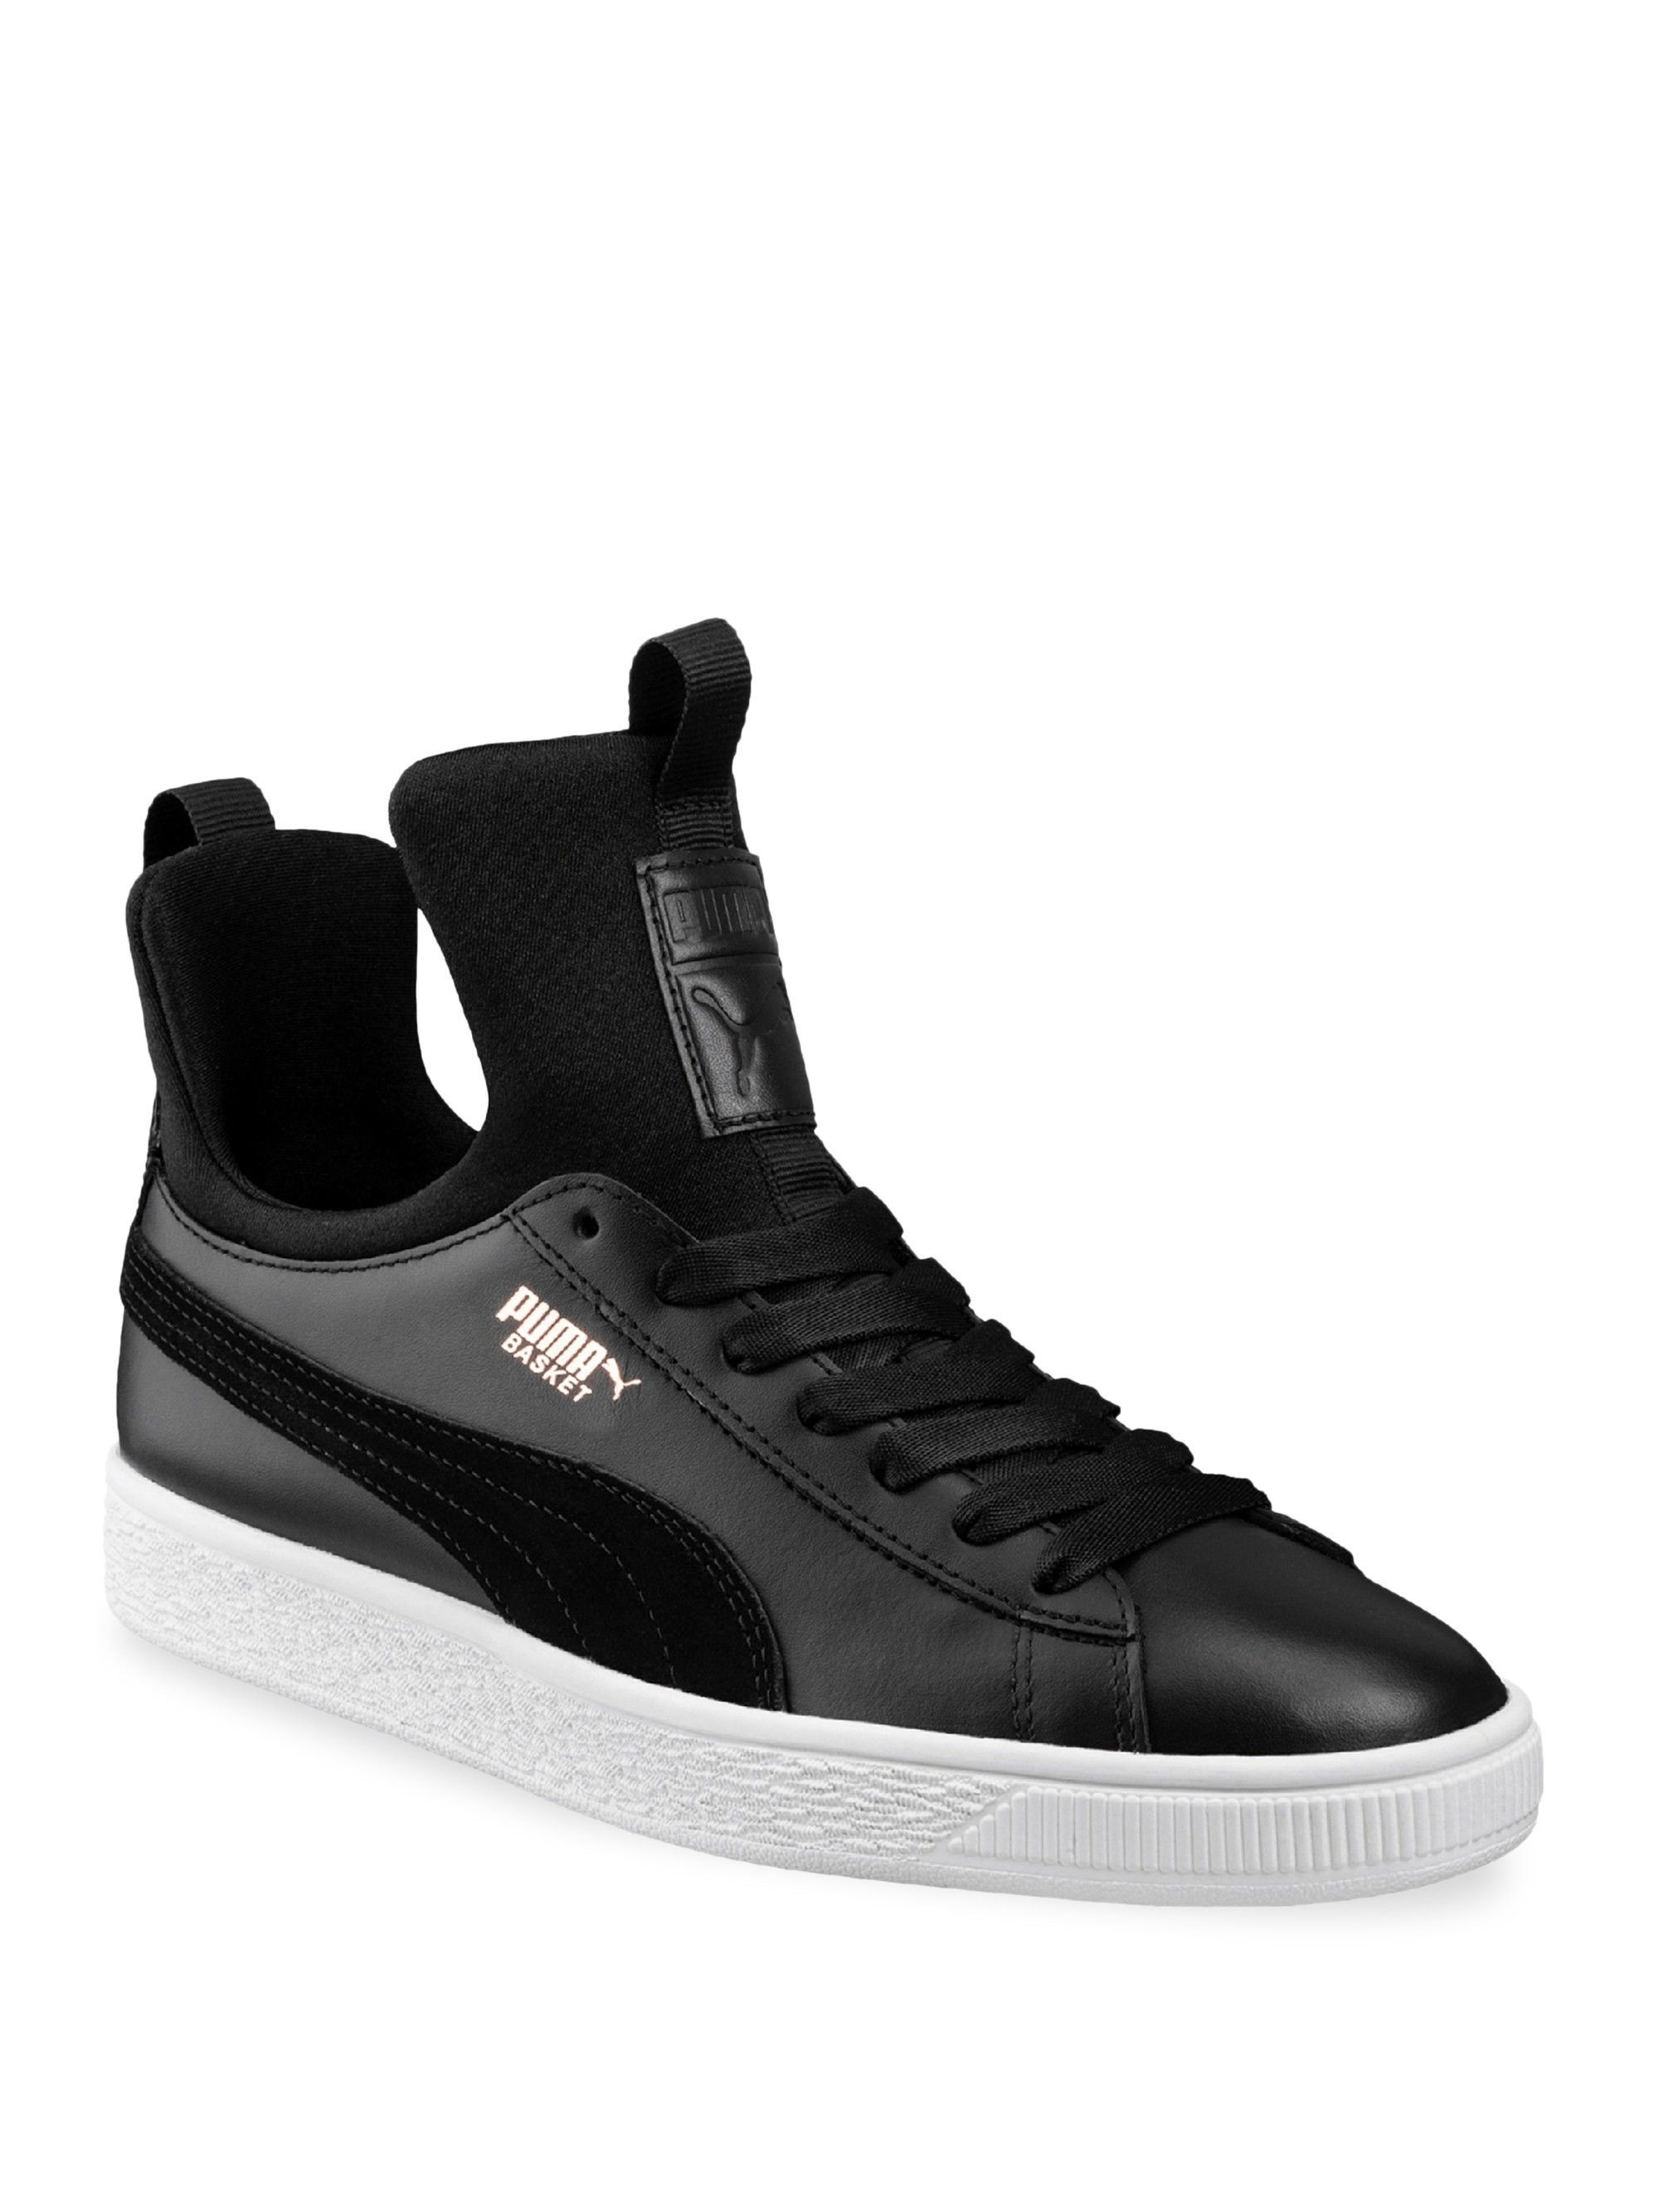 64ea0279efc54 Puma Basket Fierce Sneakers - Black 36 (6) in 2019